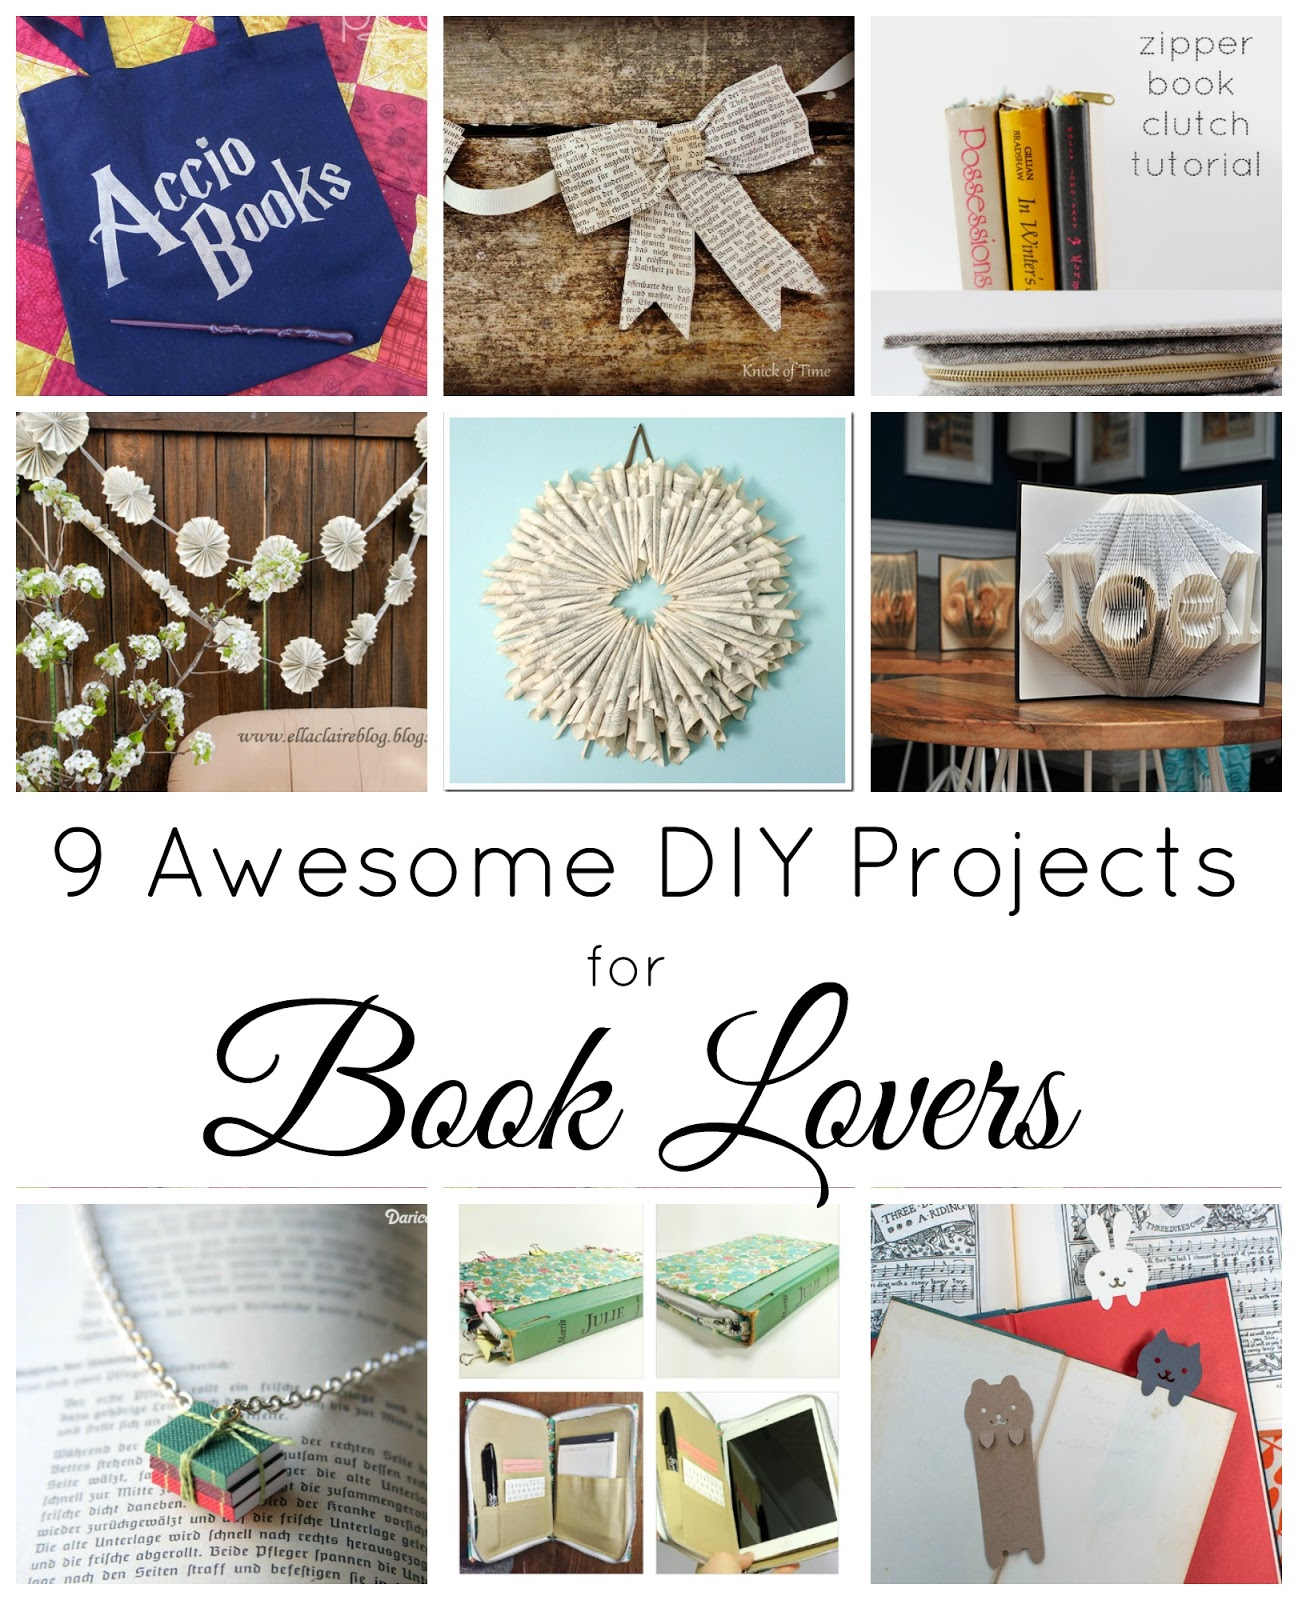 How To Make A Book Clutch With Zipper ~ Delicious reads awesome diys for book lovers